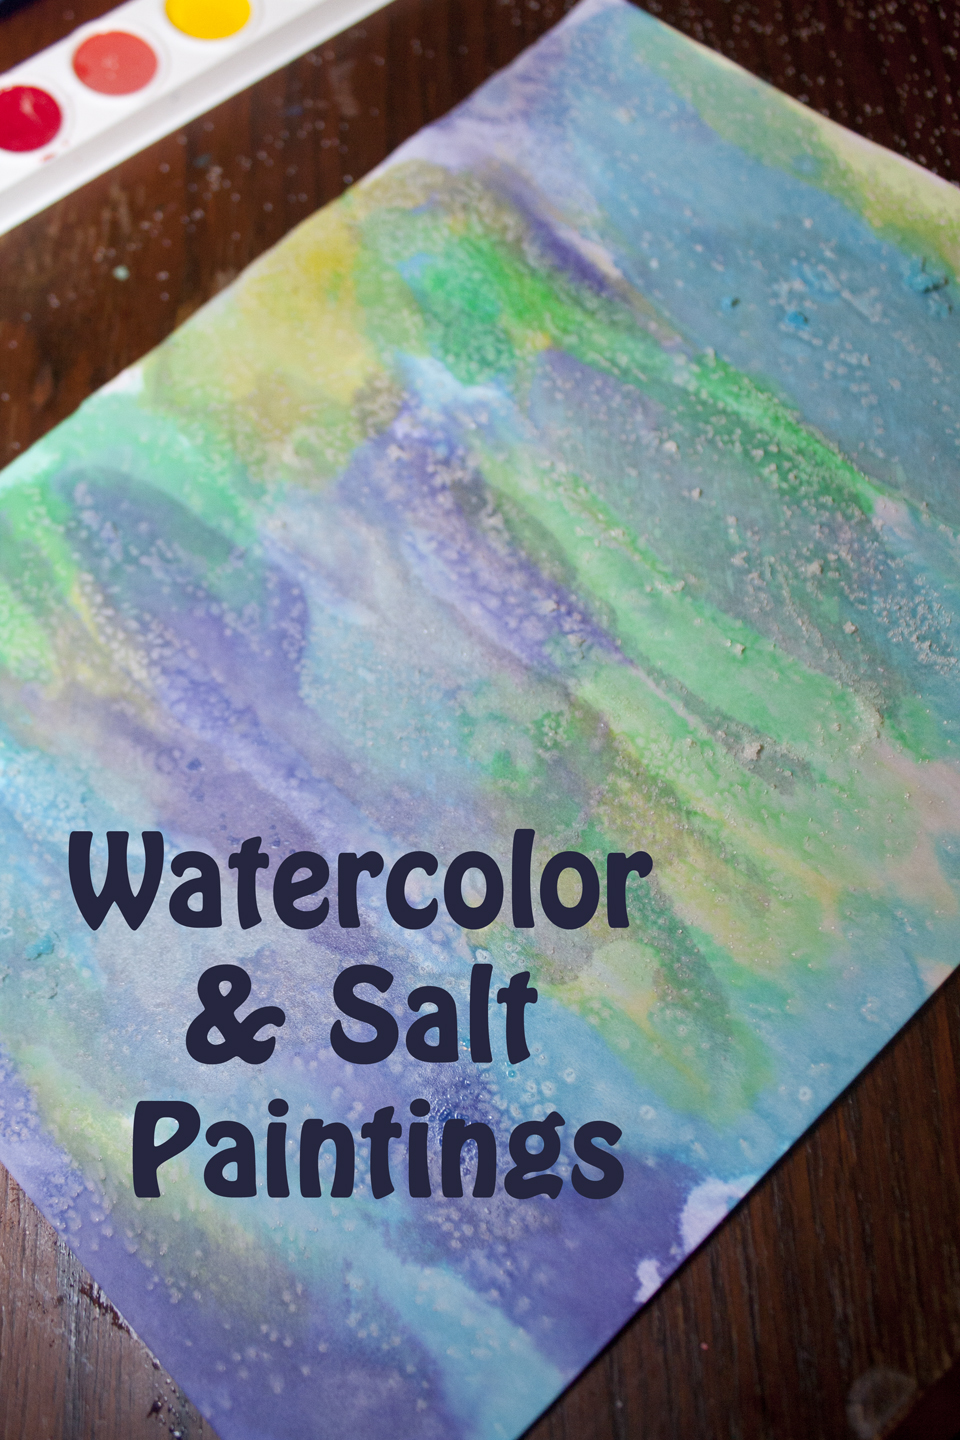 Painting with Watercolors and Salt